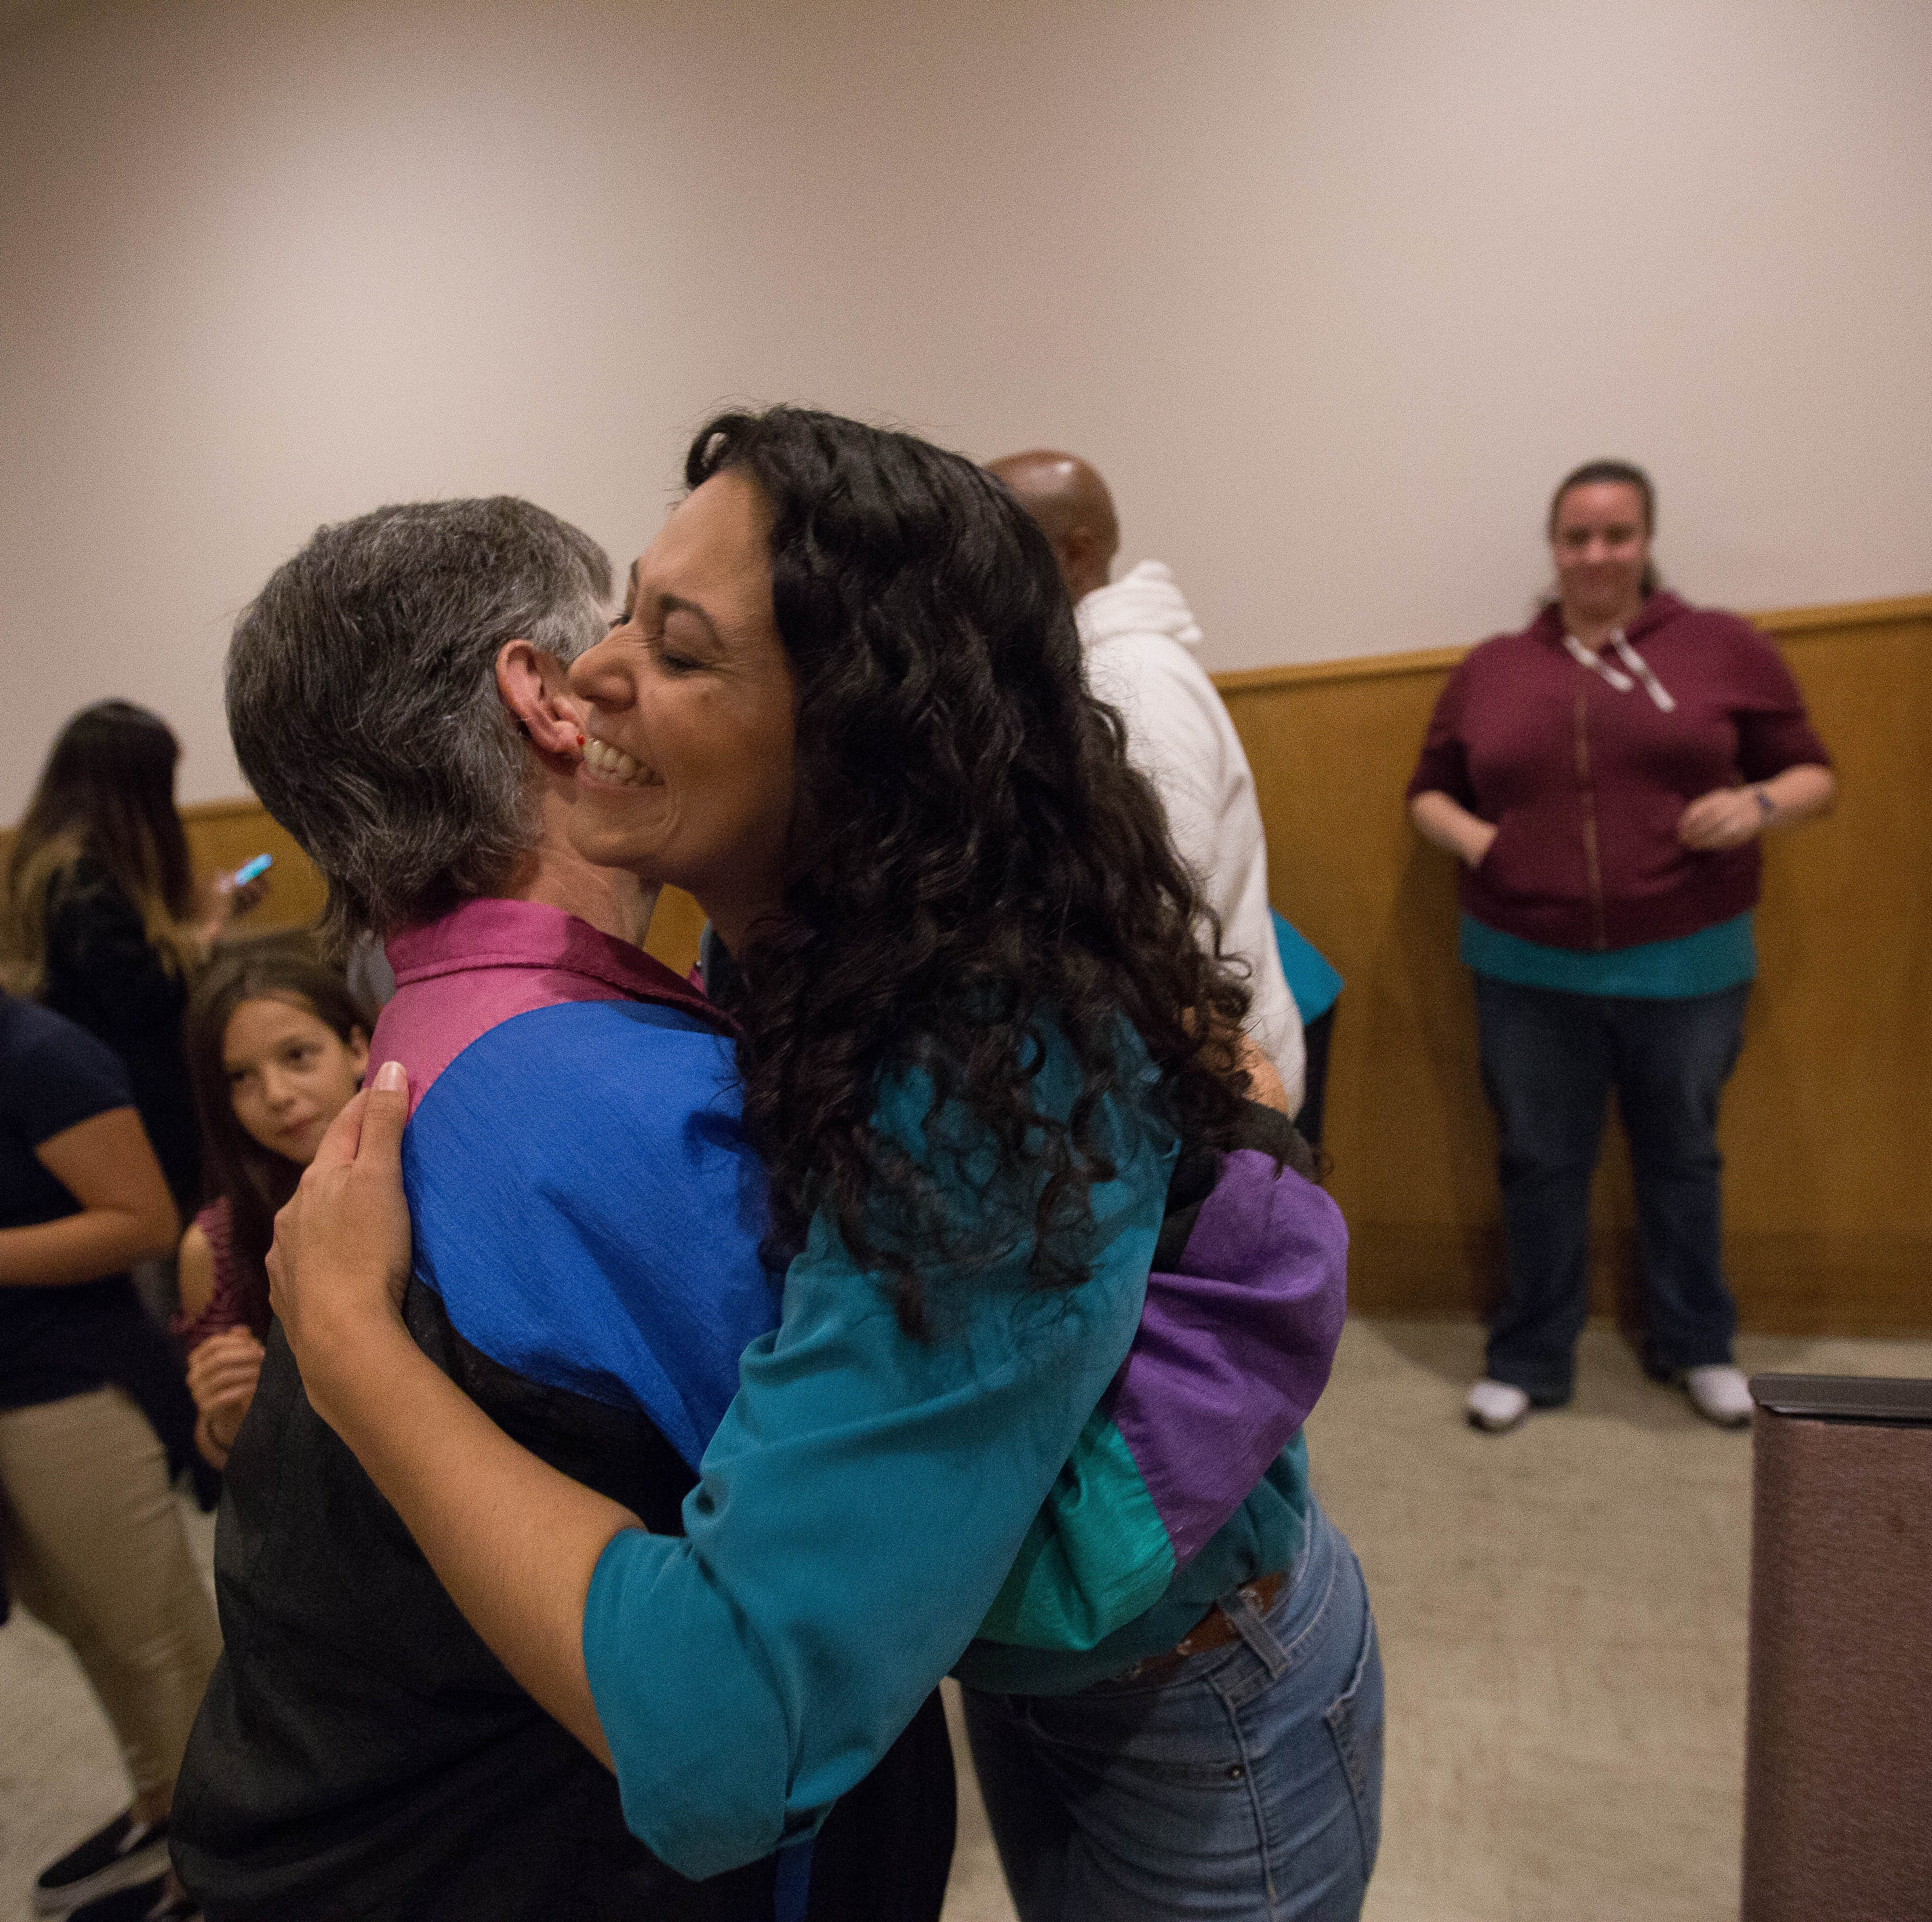 Torres Small wins with late push from absentee ballots